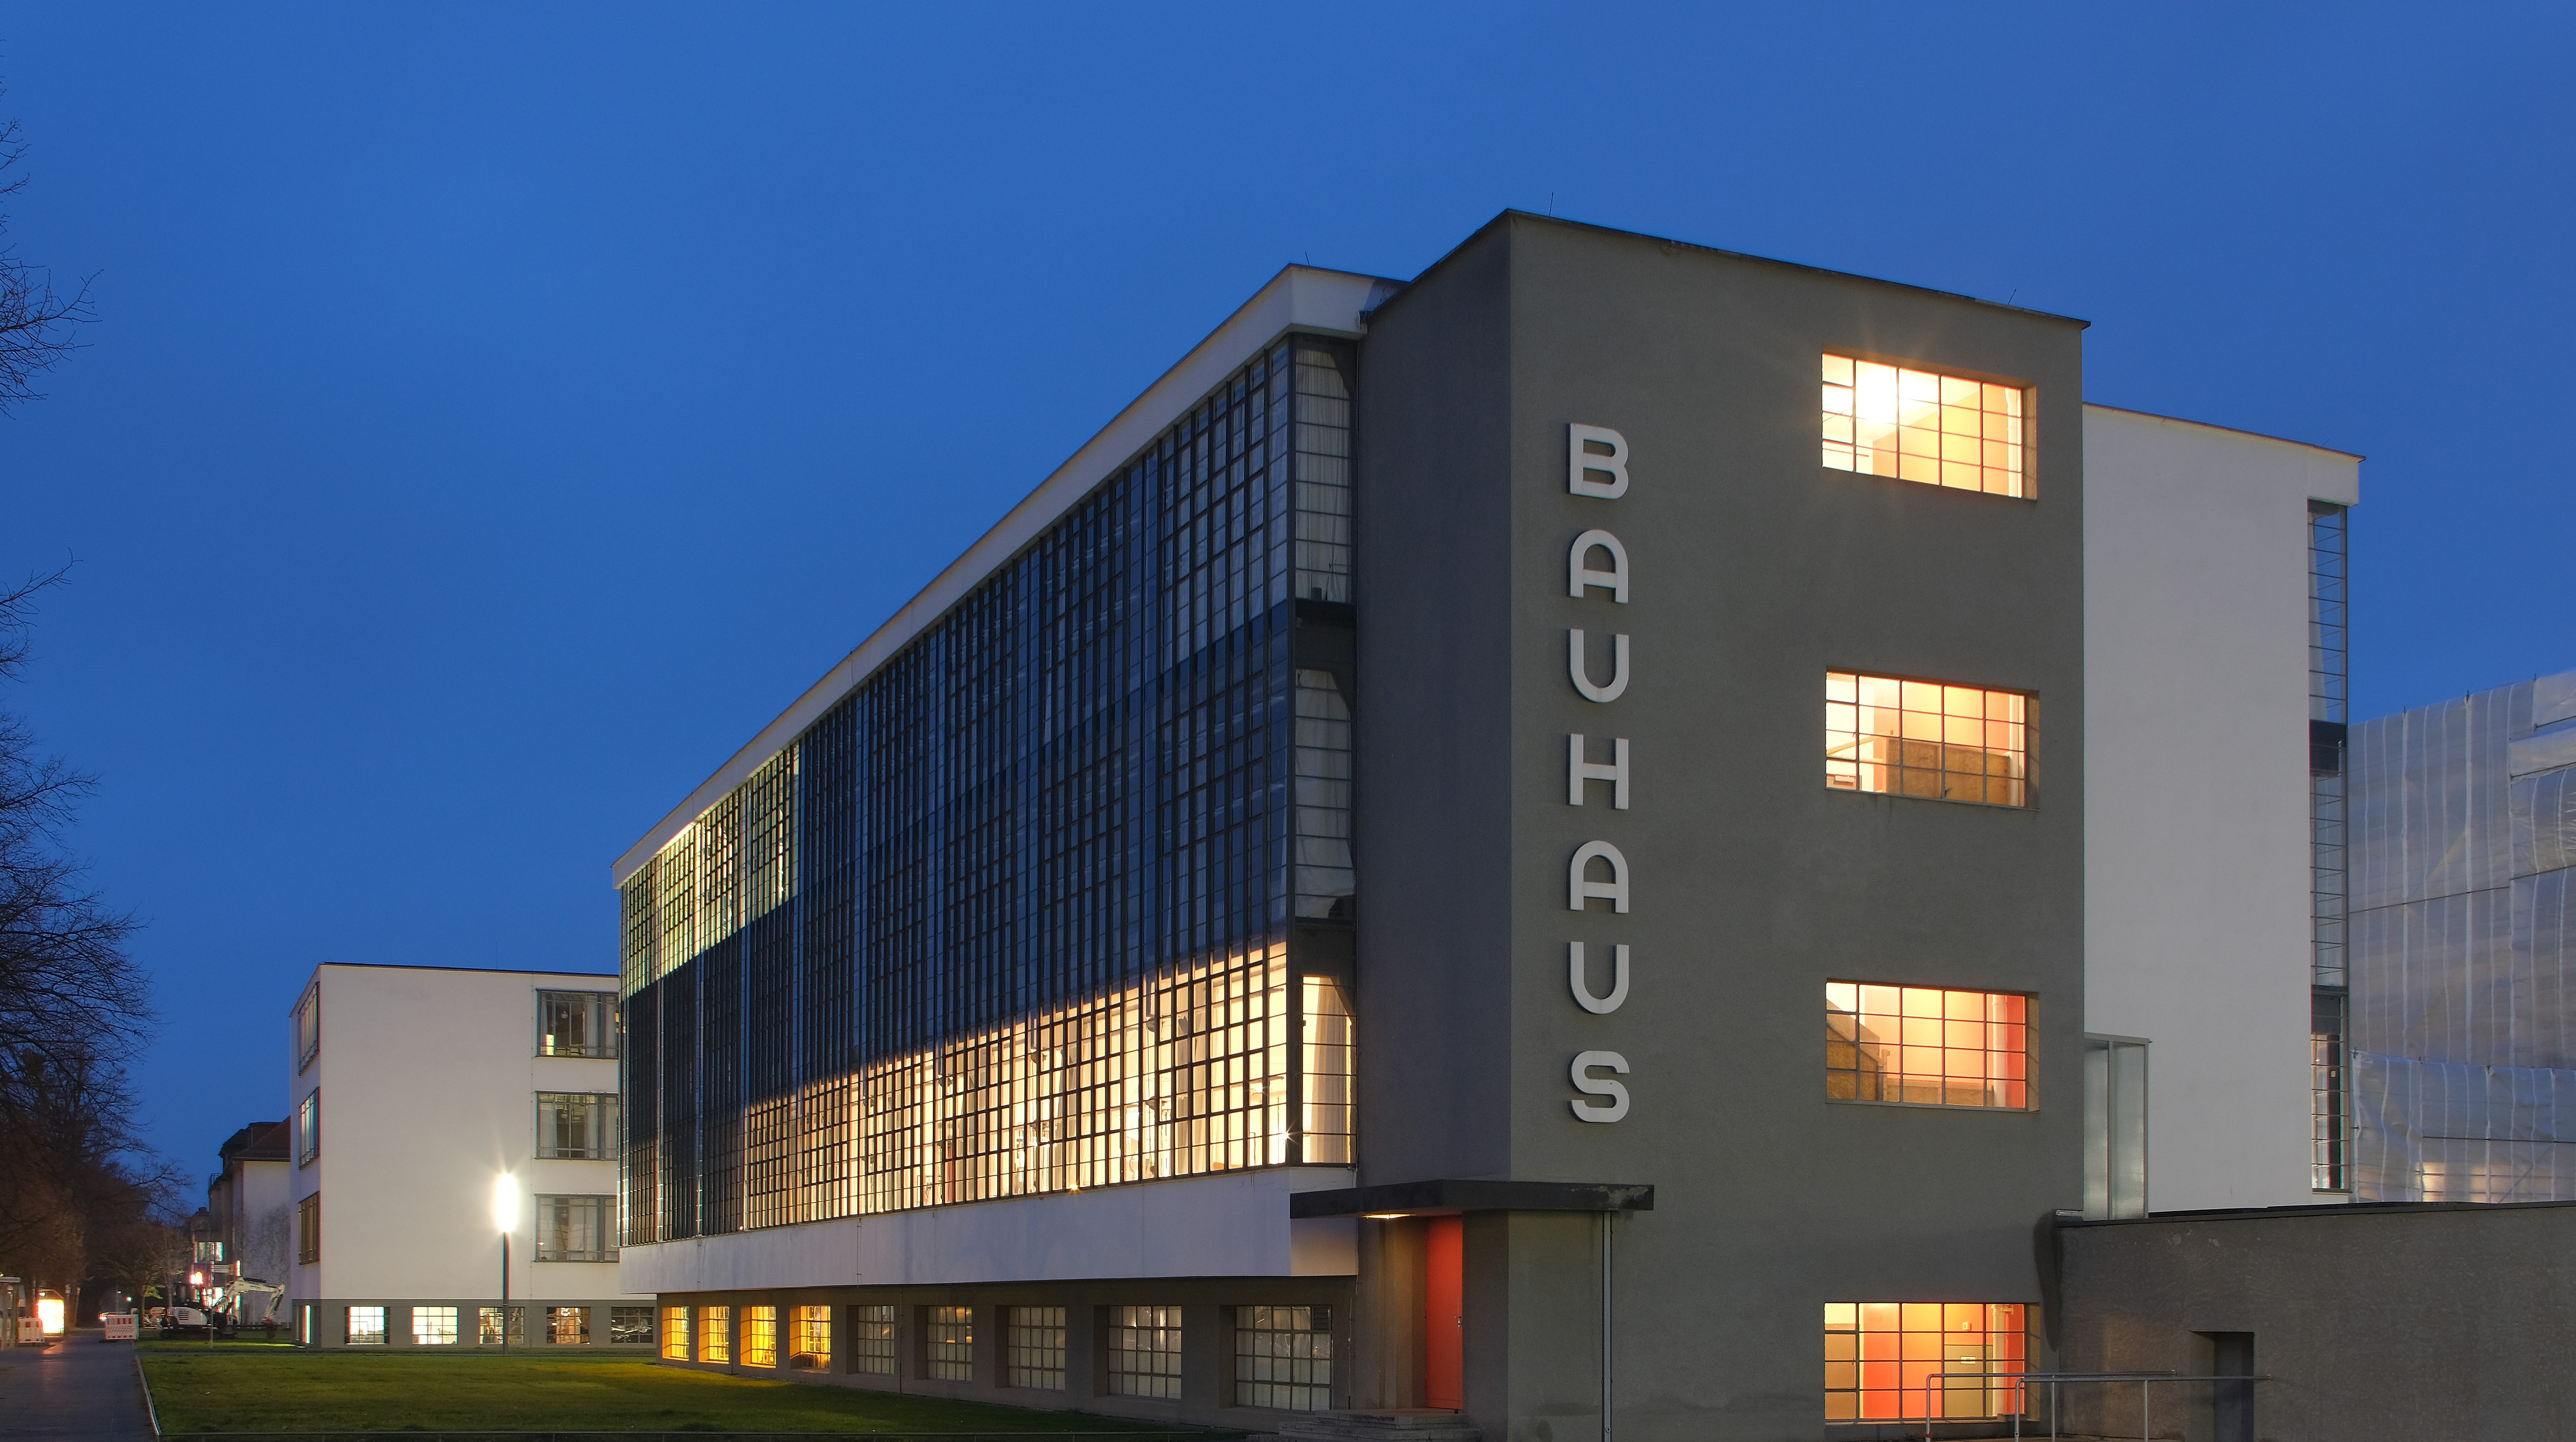 This is the building that housed the Bauhaus art school from 1925 to 1932 and is today a museum in Dessau, Germany. Germany is celebrating the 100th anniversary of the founding of the Bauhaus movement this year.